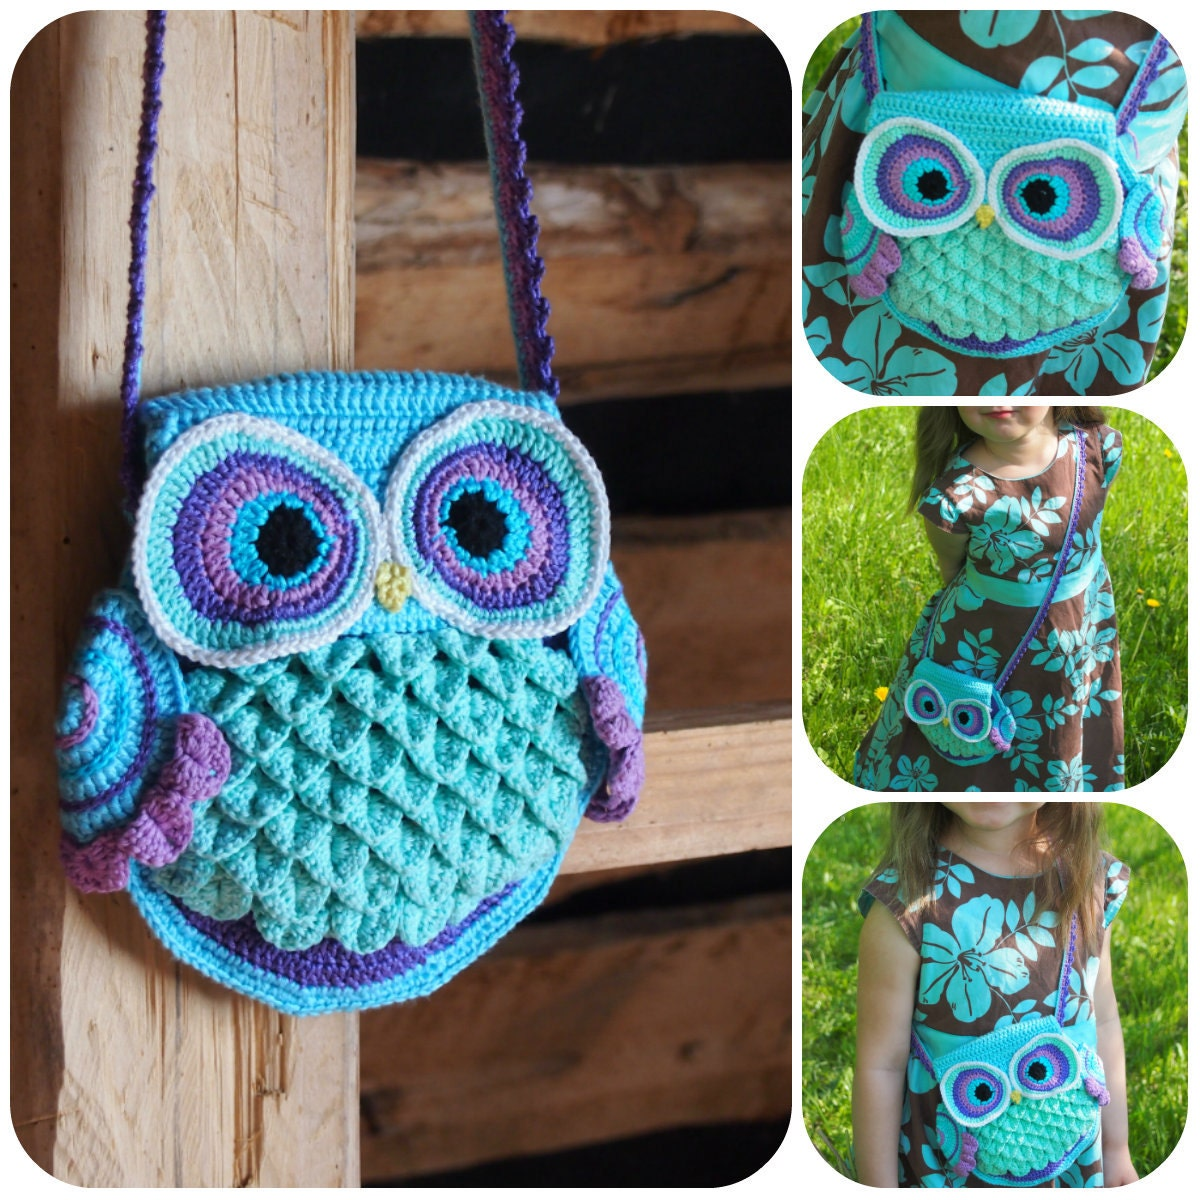 Crochet bag pattern crochet owl pattern crochet purse pattern this is a digital file bankloansurffo Image collections